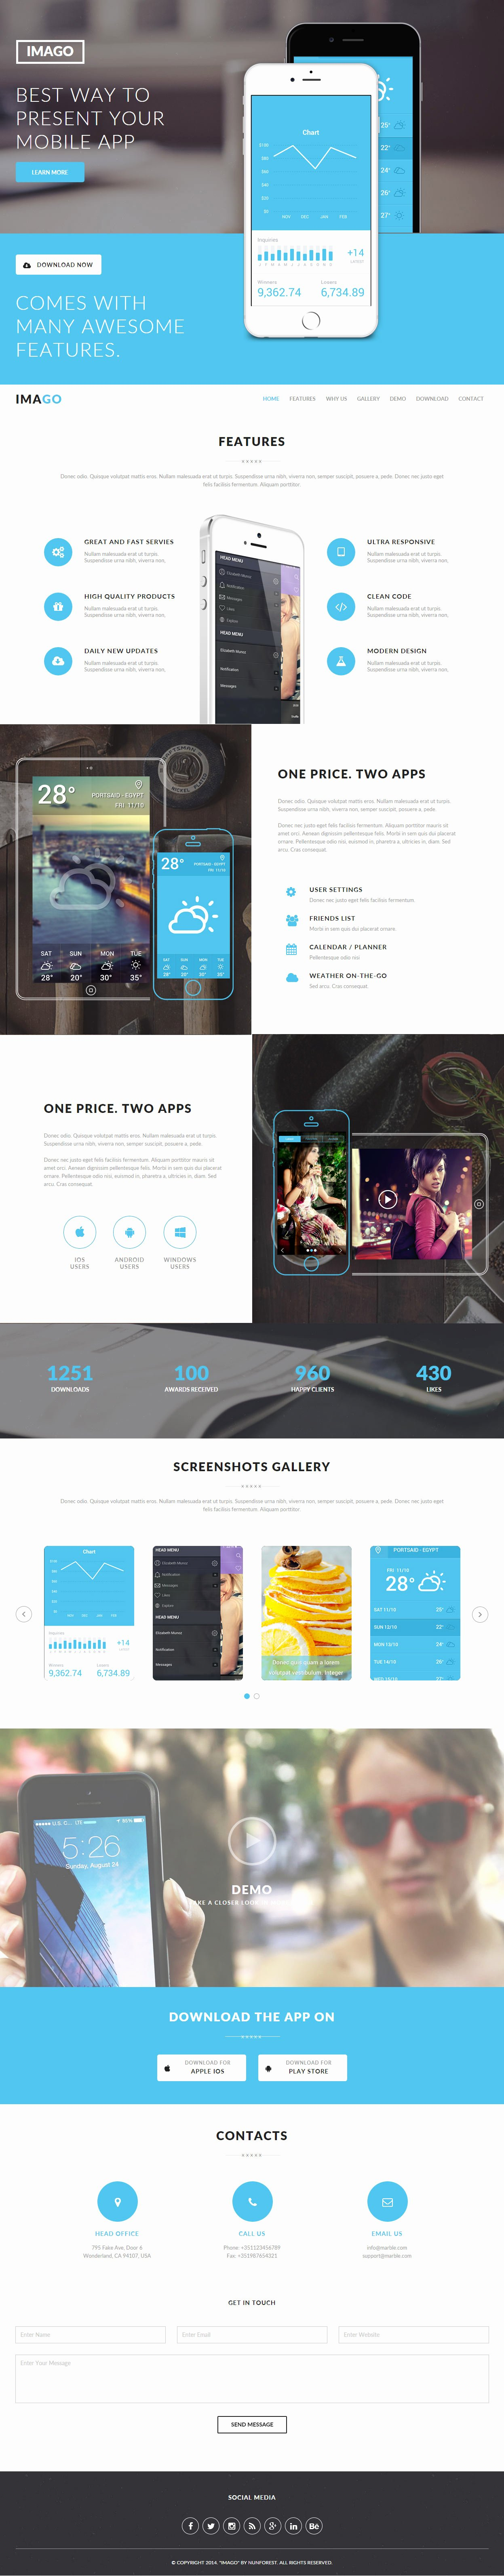 Mobile Landing Page Template Lovely 5 Best Muse Mobile App Landing Page Template 2017